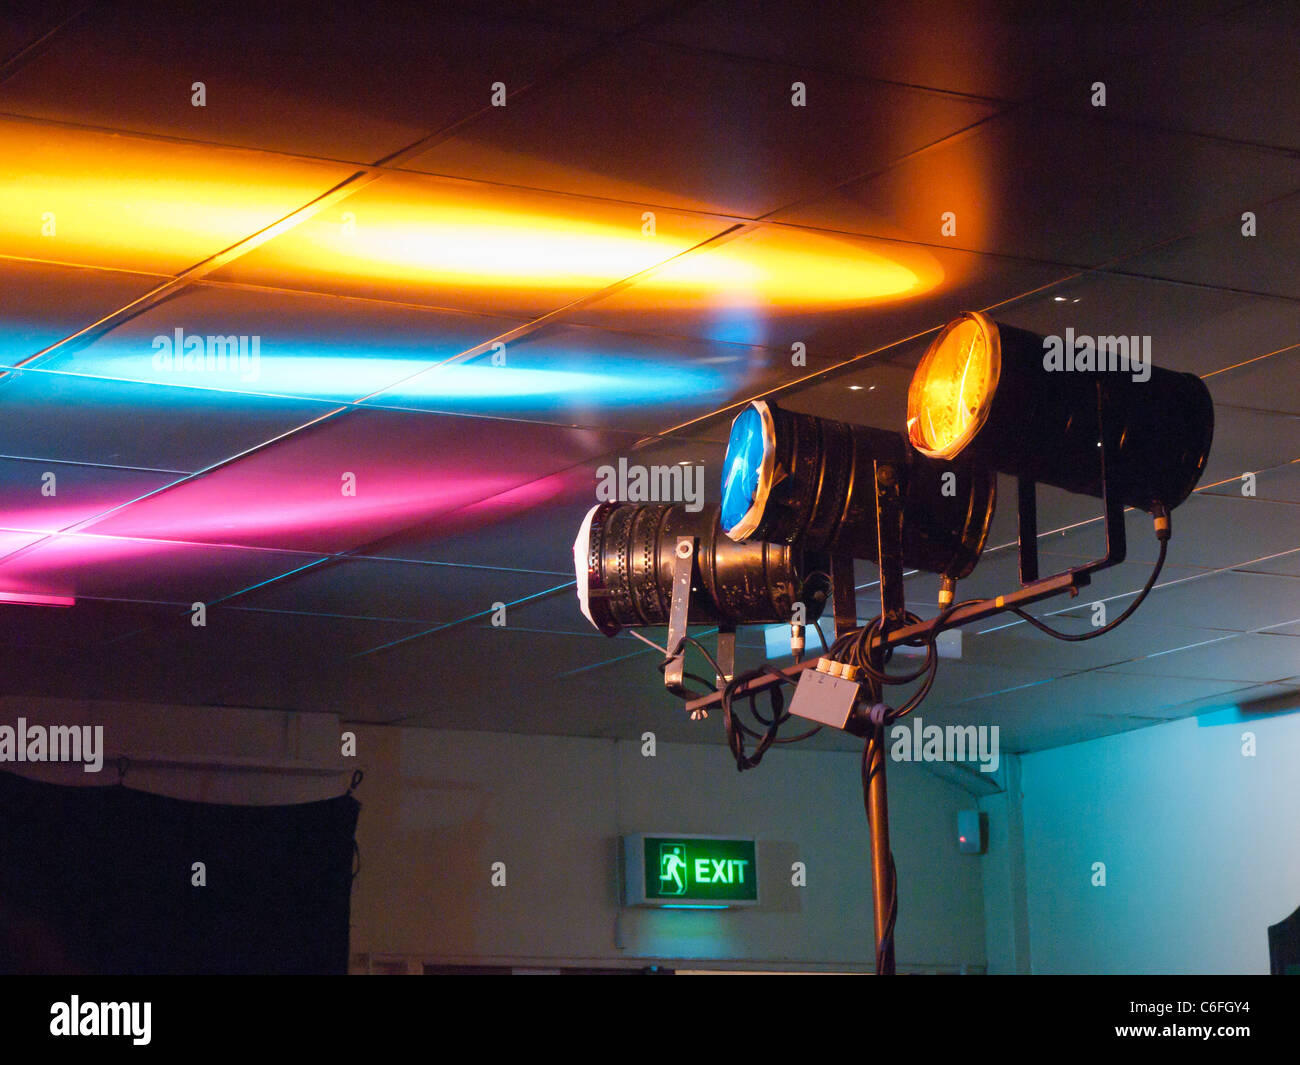 stage lights make a coloured pattern on the ceiling at a London blues club - Stock Image